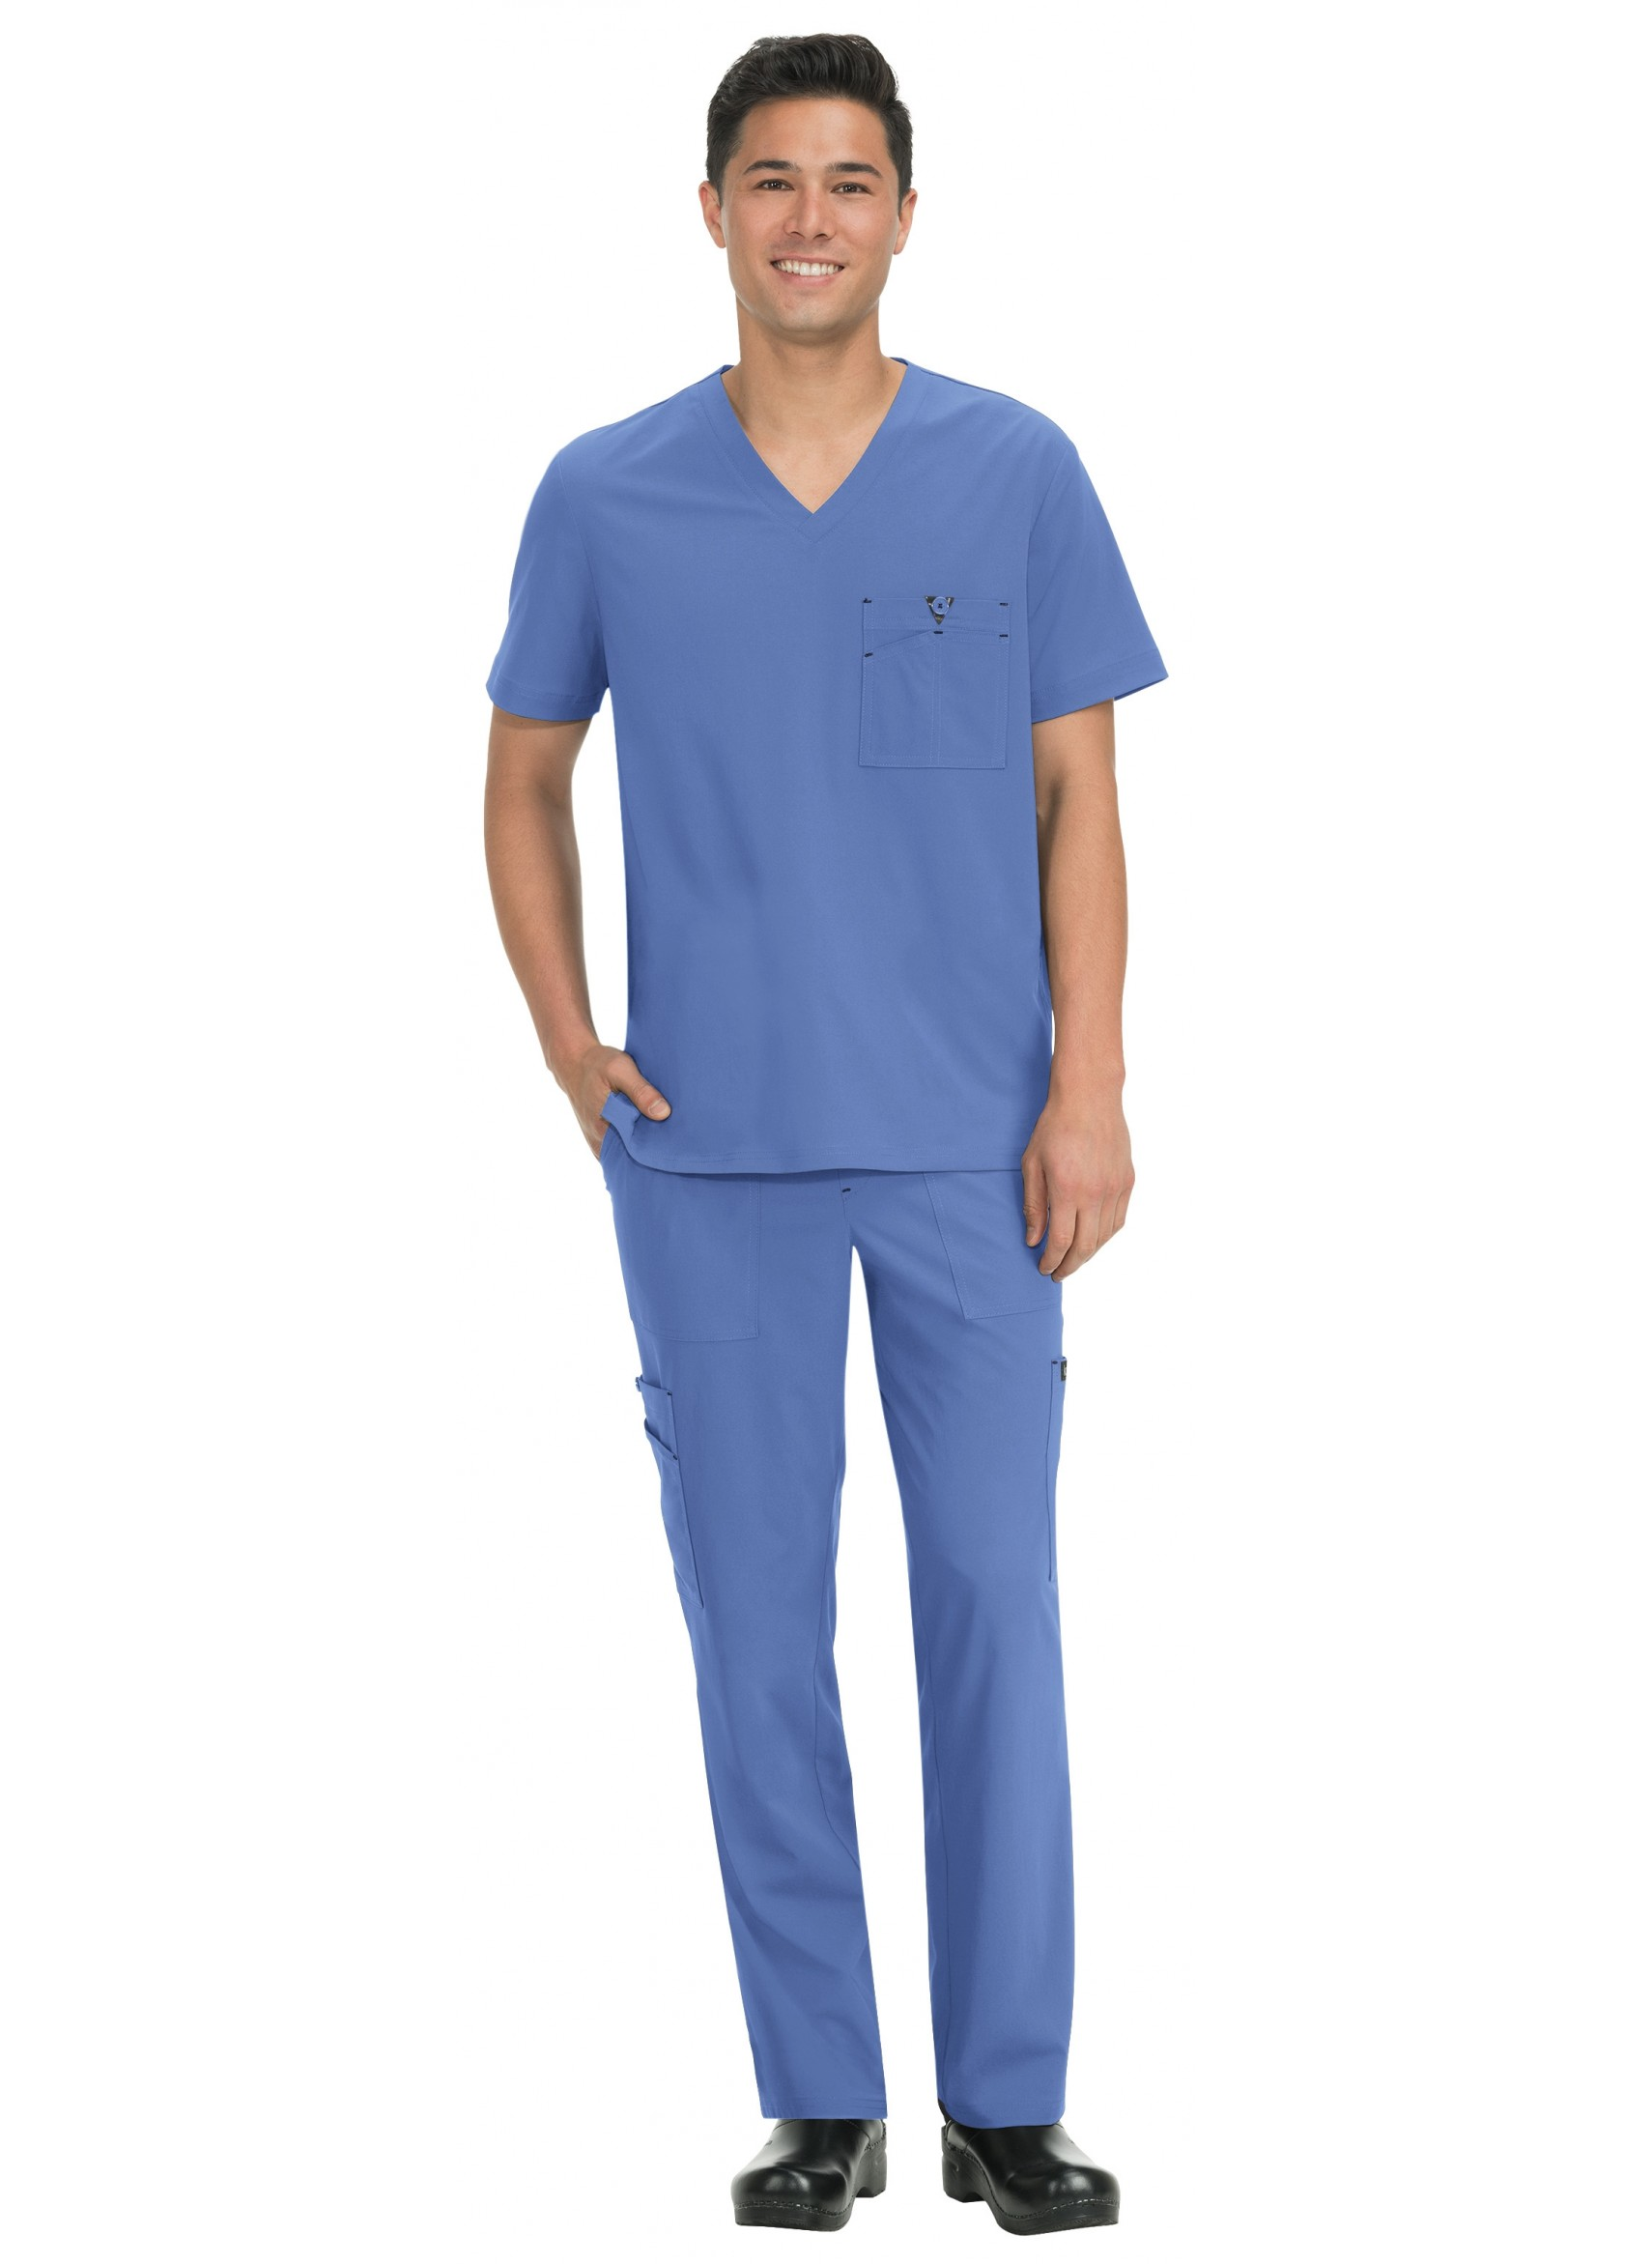 10e0a947bd 20% off all Dickies Scrubs! Use code DICKIES20 at checkout!